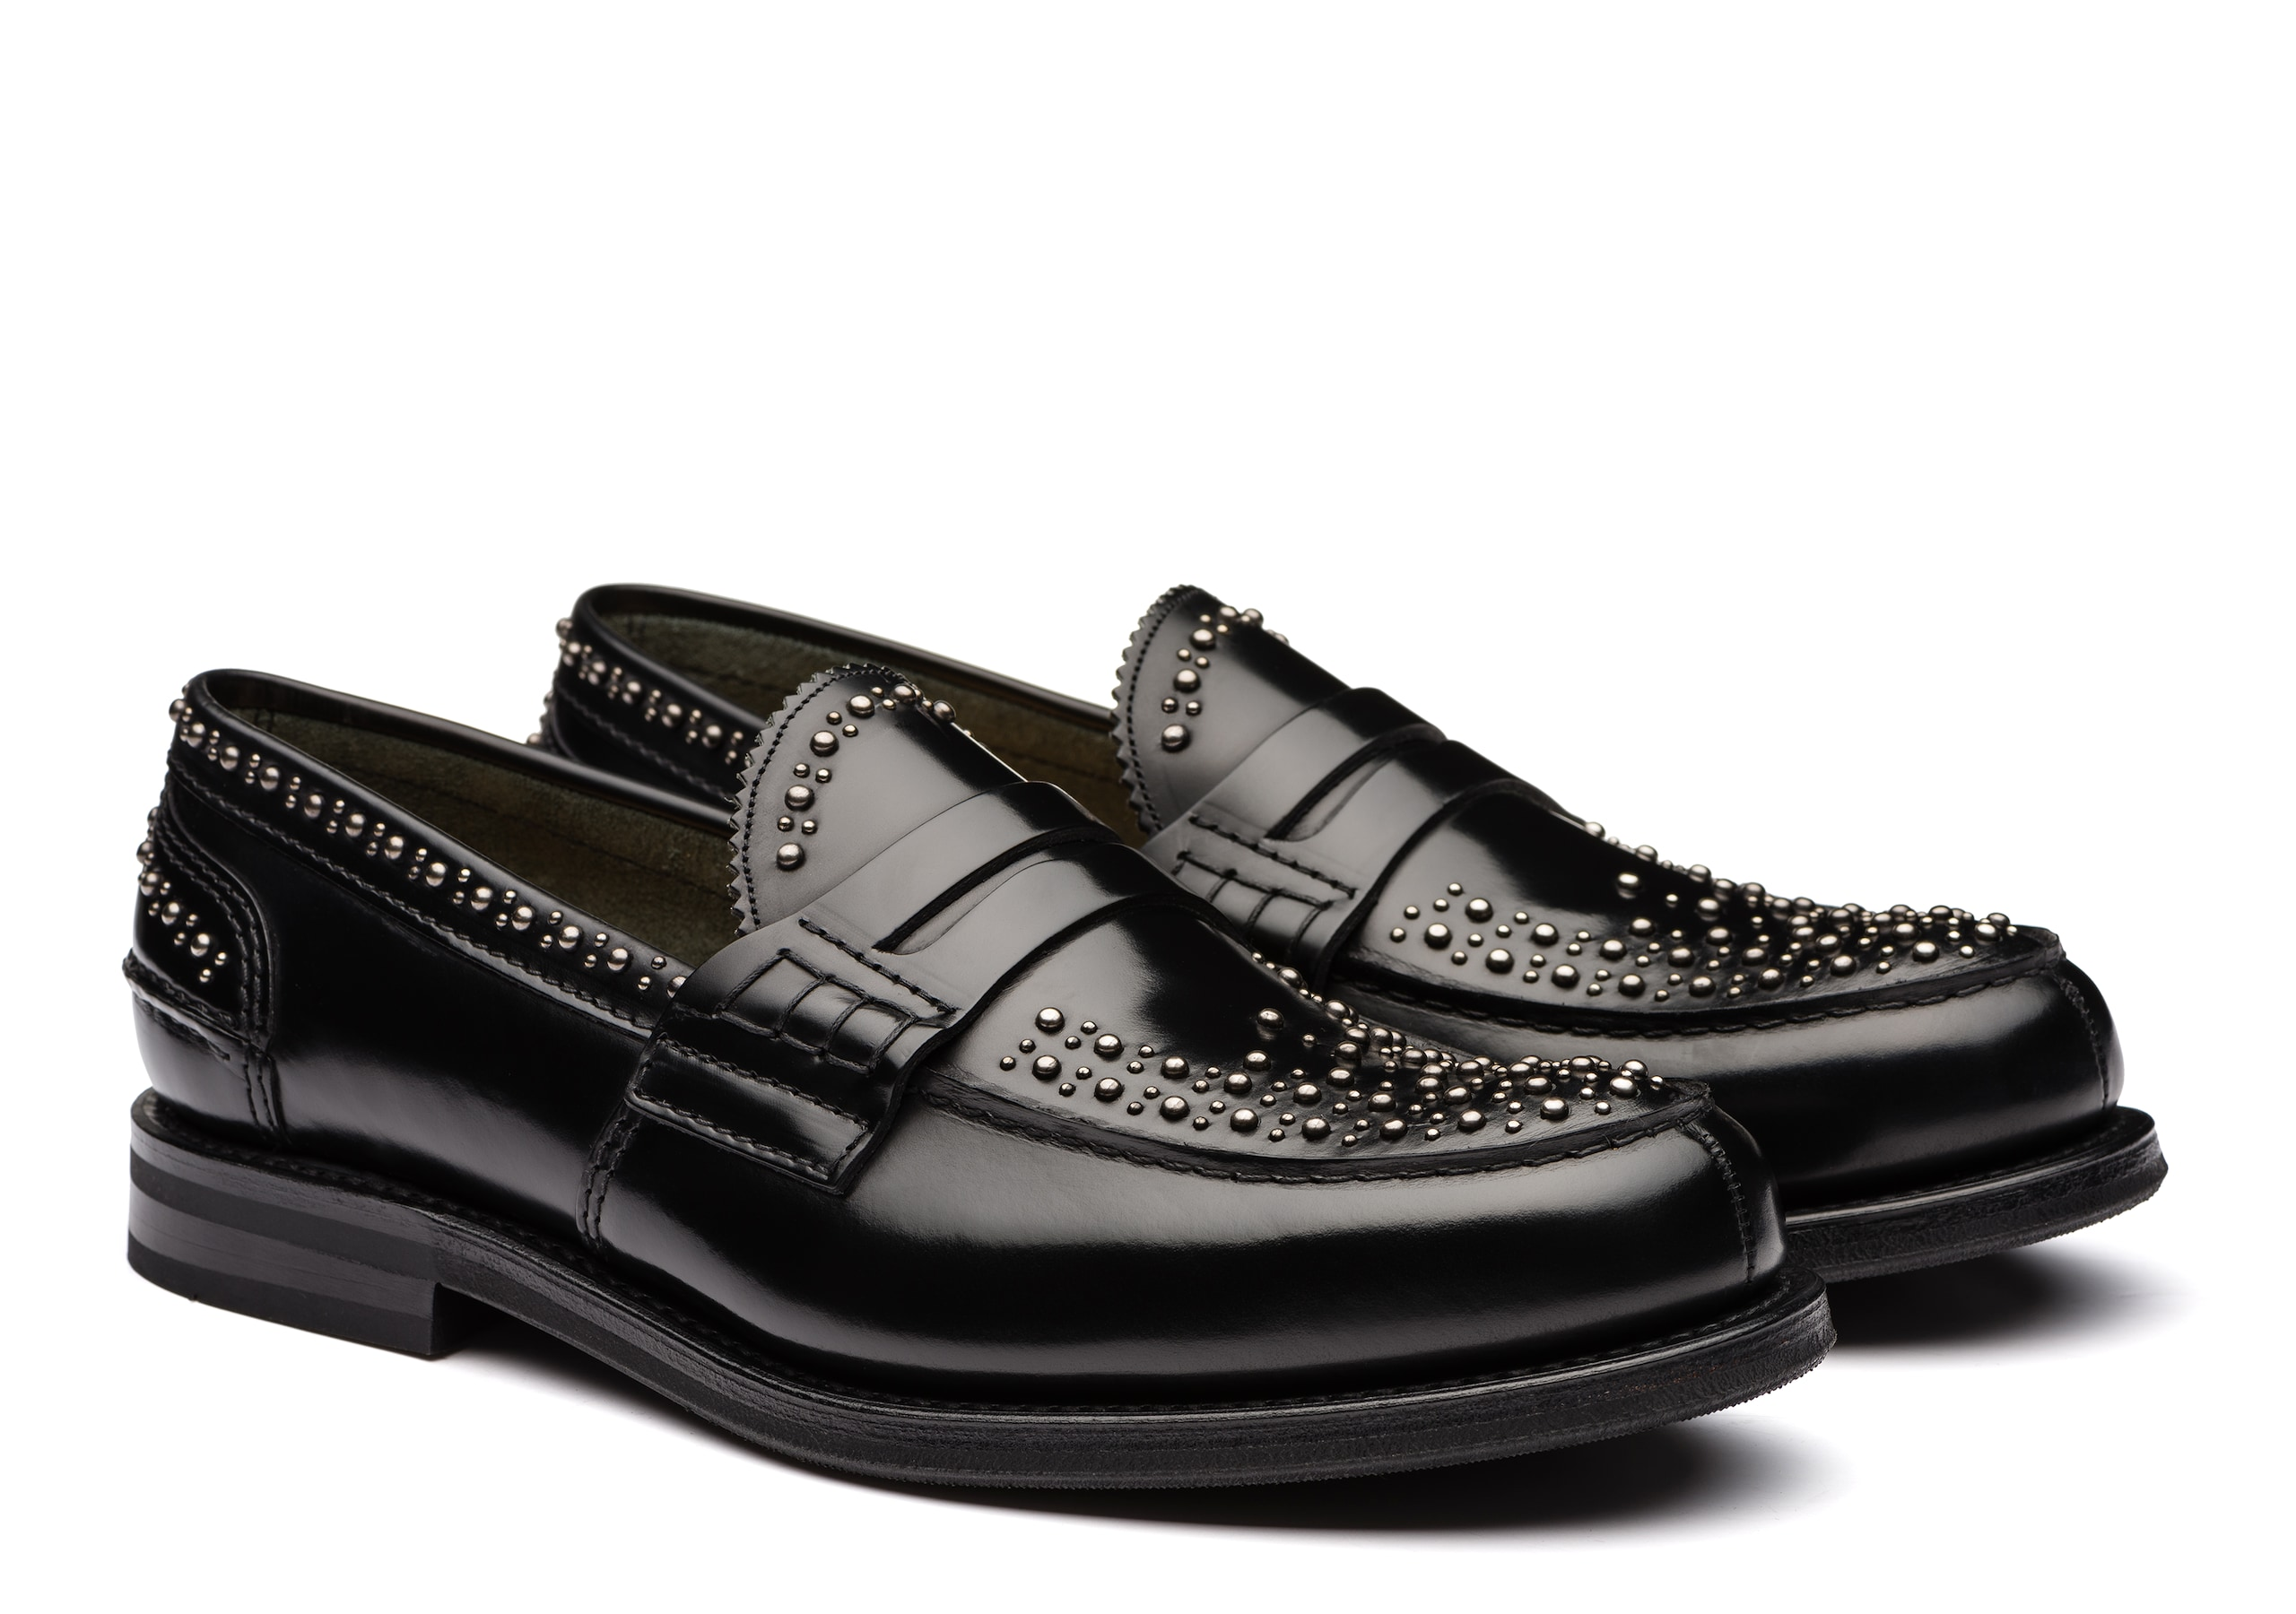 Pembrey met Church's Polished Binder Loafer  Stud Black